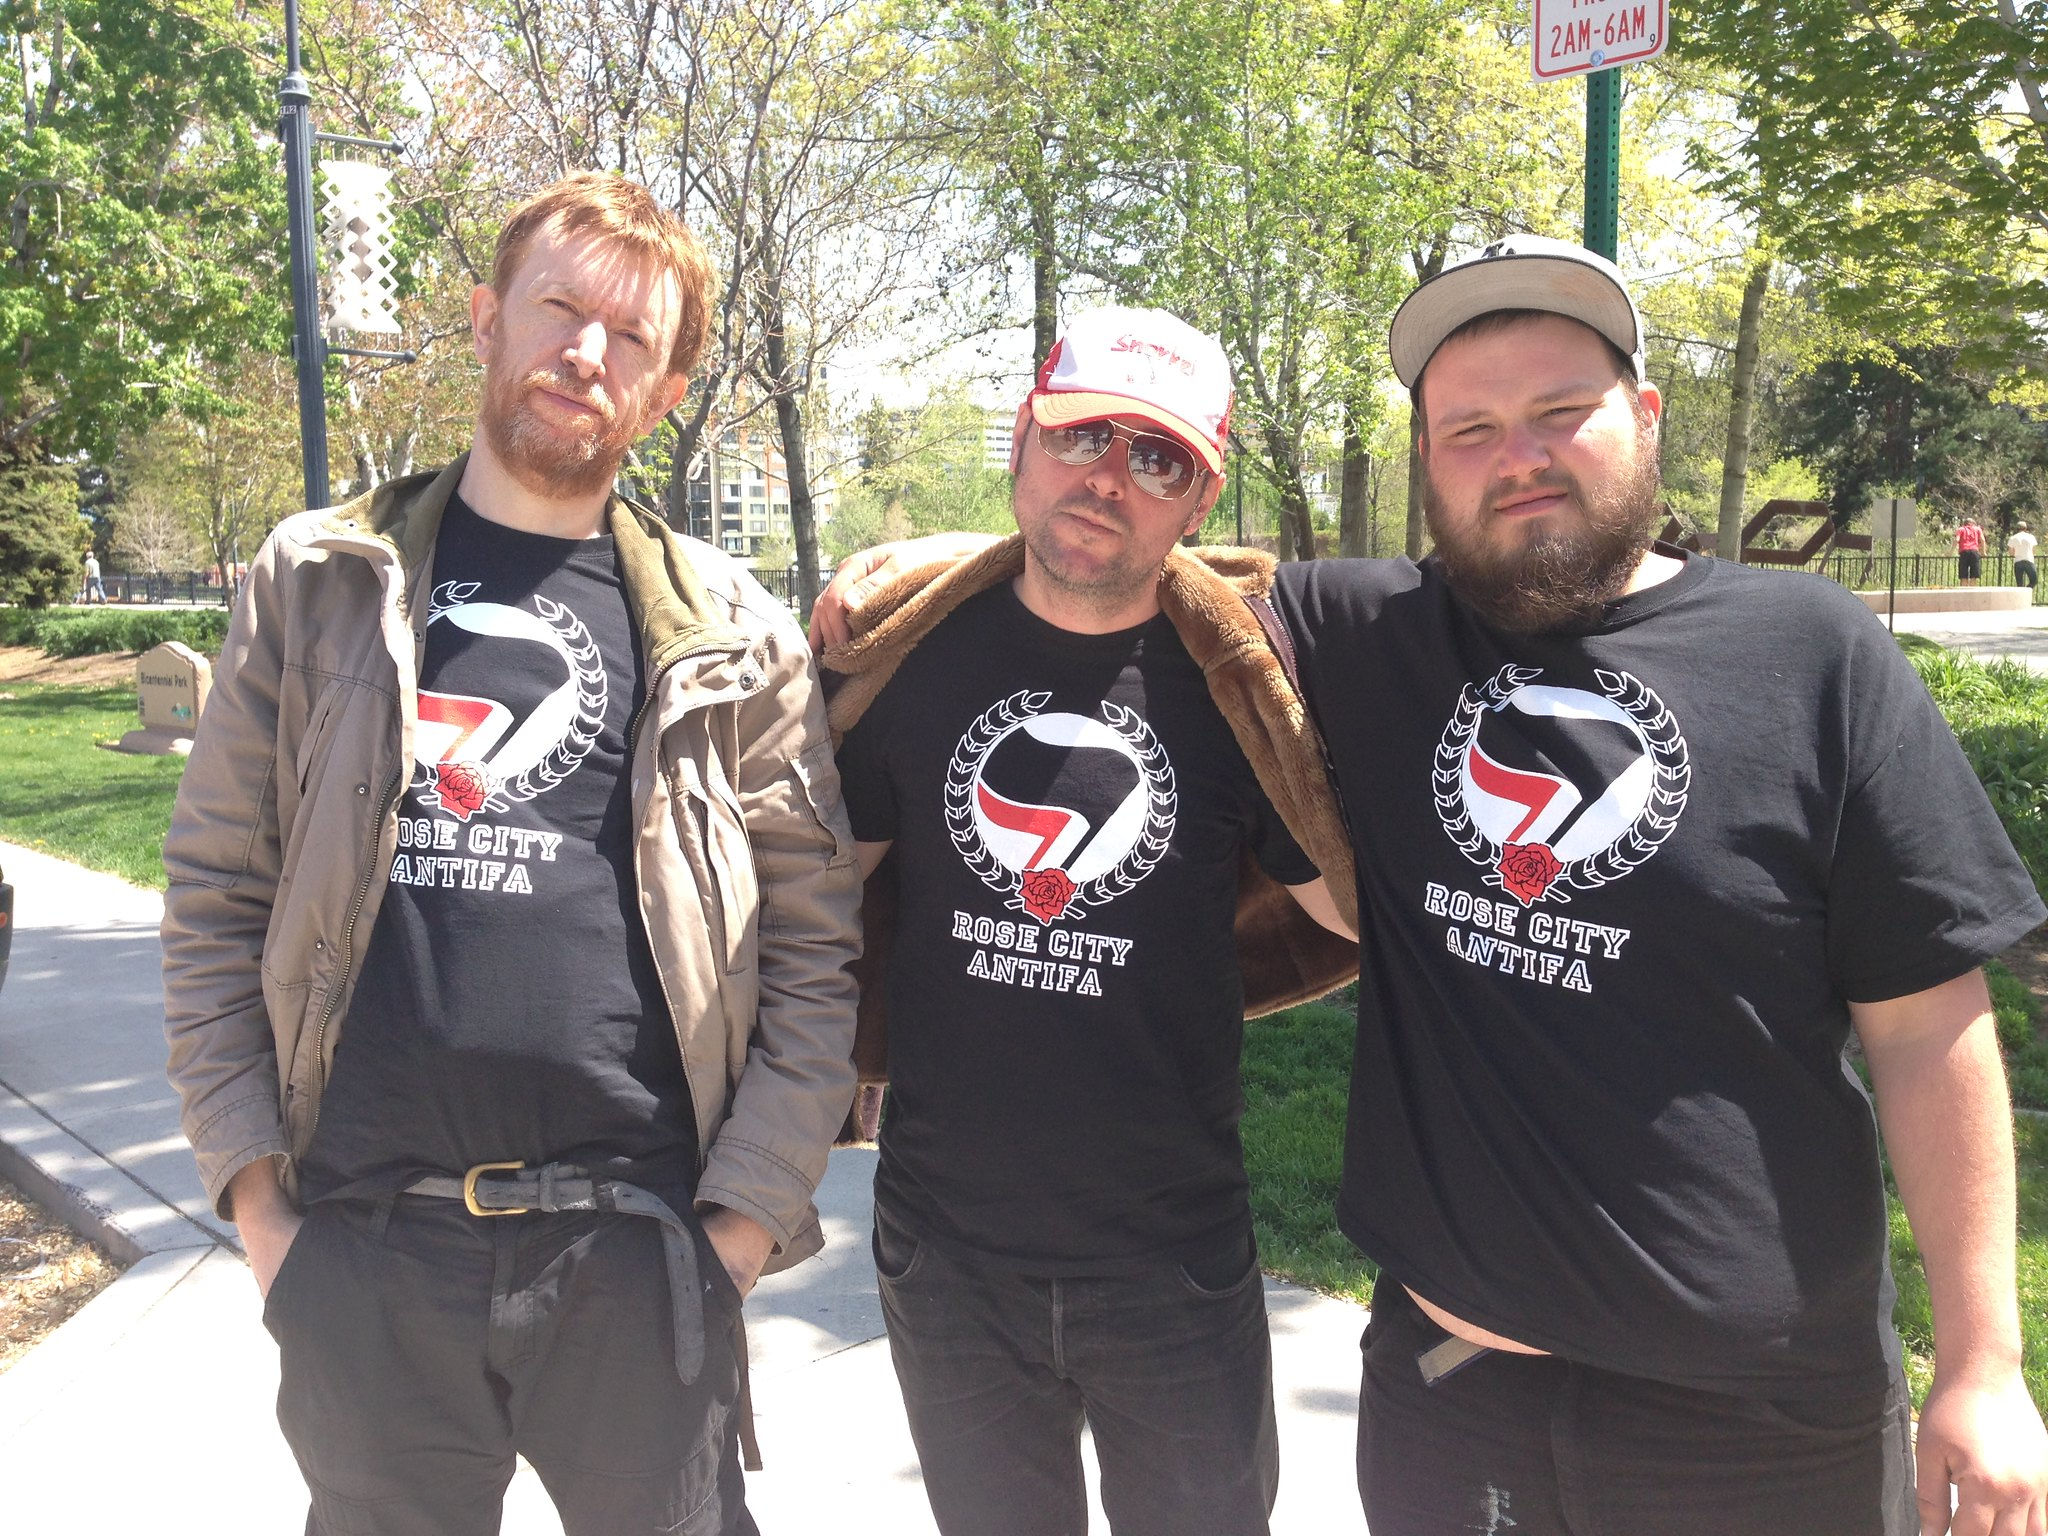 Rose City Antifa Gang